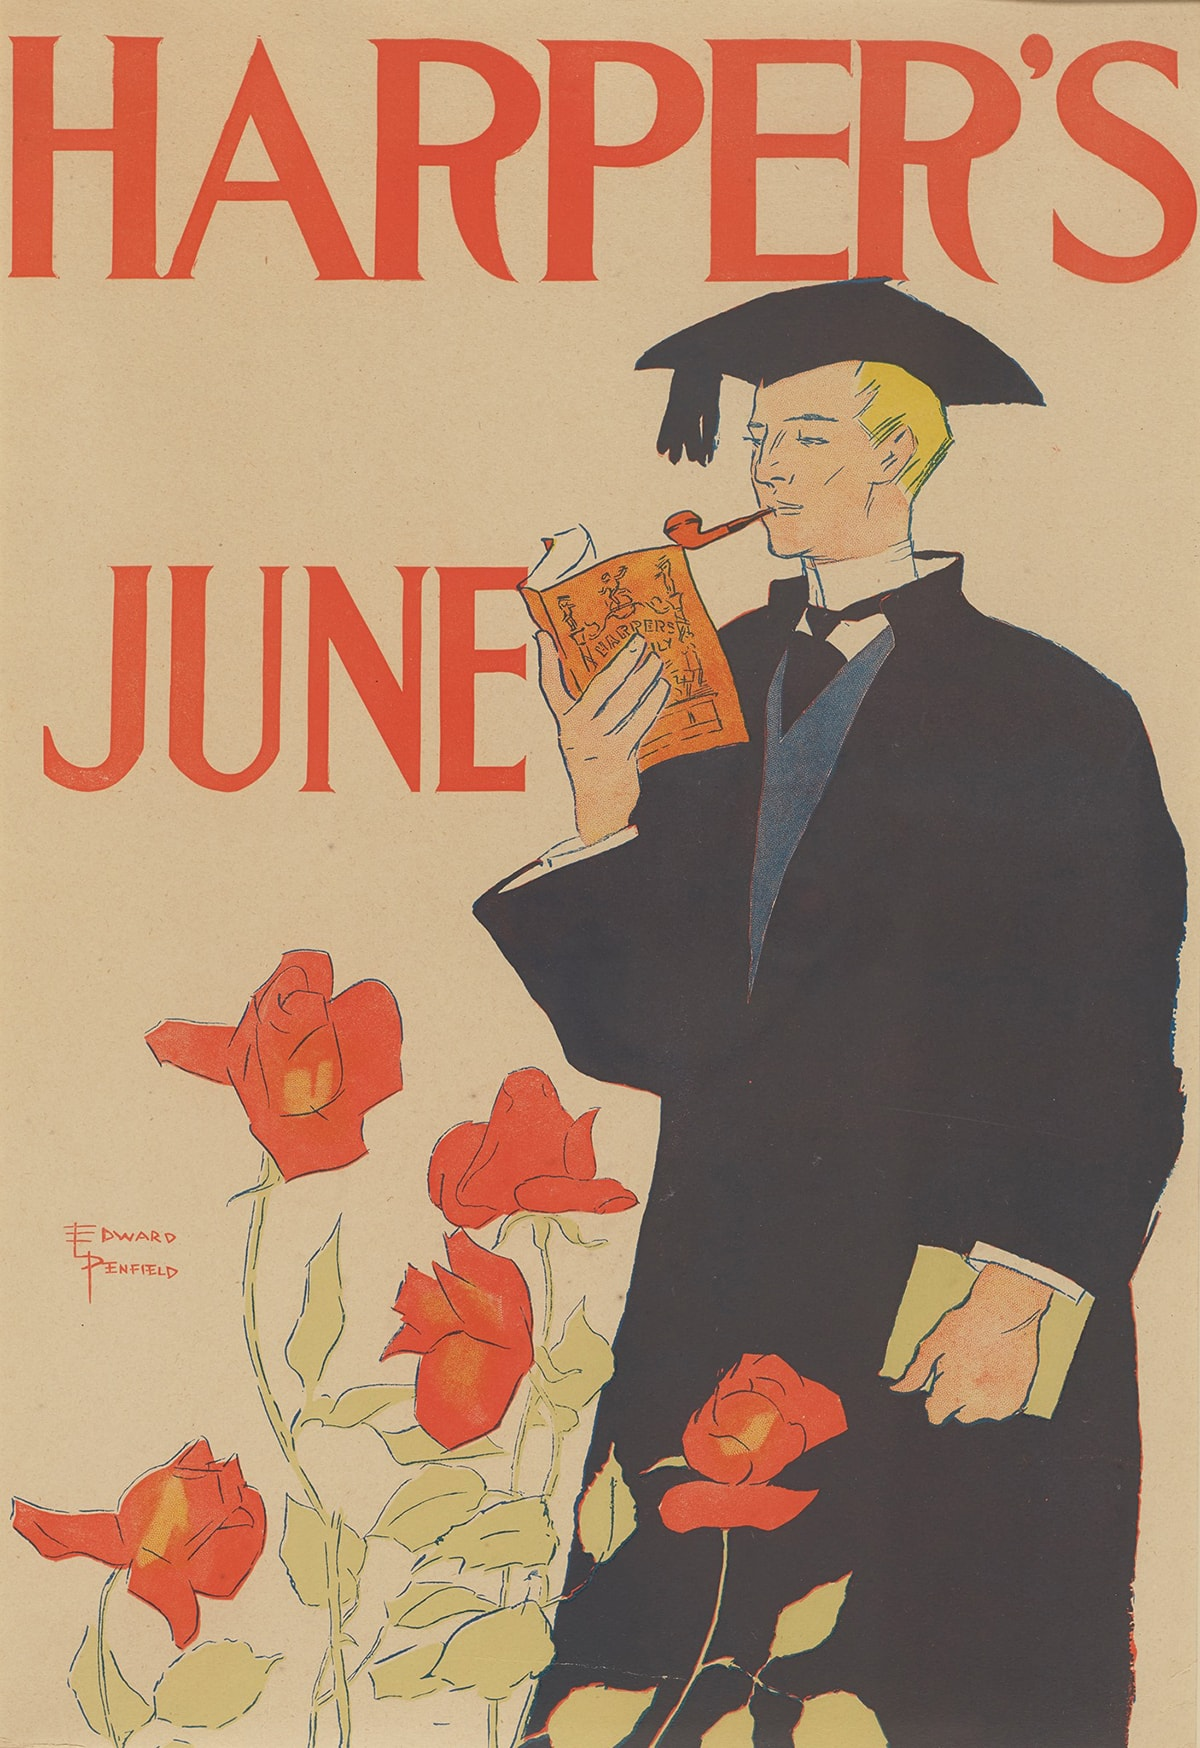 """Image description: Harper's June 1895, Edward Penfield, color lithograph, 18 ¾ x 12 13/16 inches. A portrait-oriented poster showing a male figure dressed in a black graduation cap and gown, holding a book while smoking a pipe under the tomato red words: """"Harper's June"""". """"Harper's"""" is stretched across the top of the print and the word """"June"""" sits under it to the left on the pale tan background. The figure is shown from the knee up at right. He is turned to the left, has peach-colored skin and yellow, short hair under his mortar board. He smokes a small brown pipe and holds up an orange book as if reading. A white shirt, black tie and blue vest are seen under the robe. He holds a tan rectangular object in his left hand by his side. The lower left holds five large rose blossoms on long, pale green stems with leaves. One flower overlaps the figure's black gown. The artist's signature appears in orange at left of the roses."""